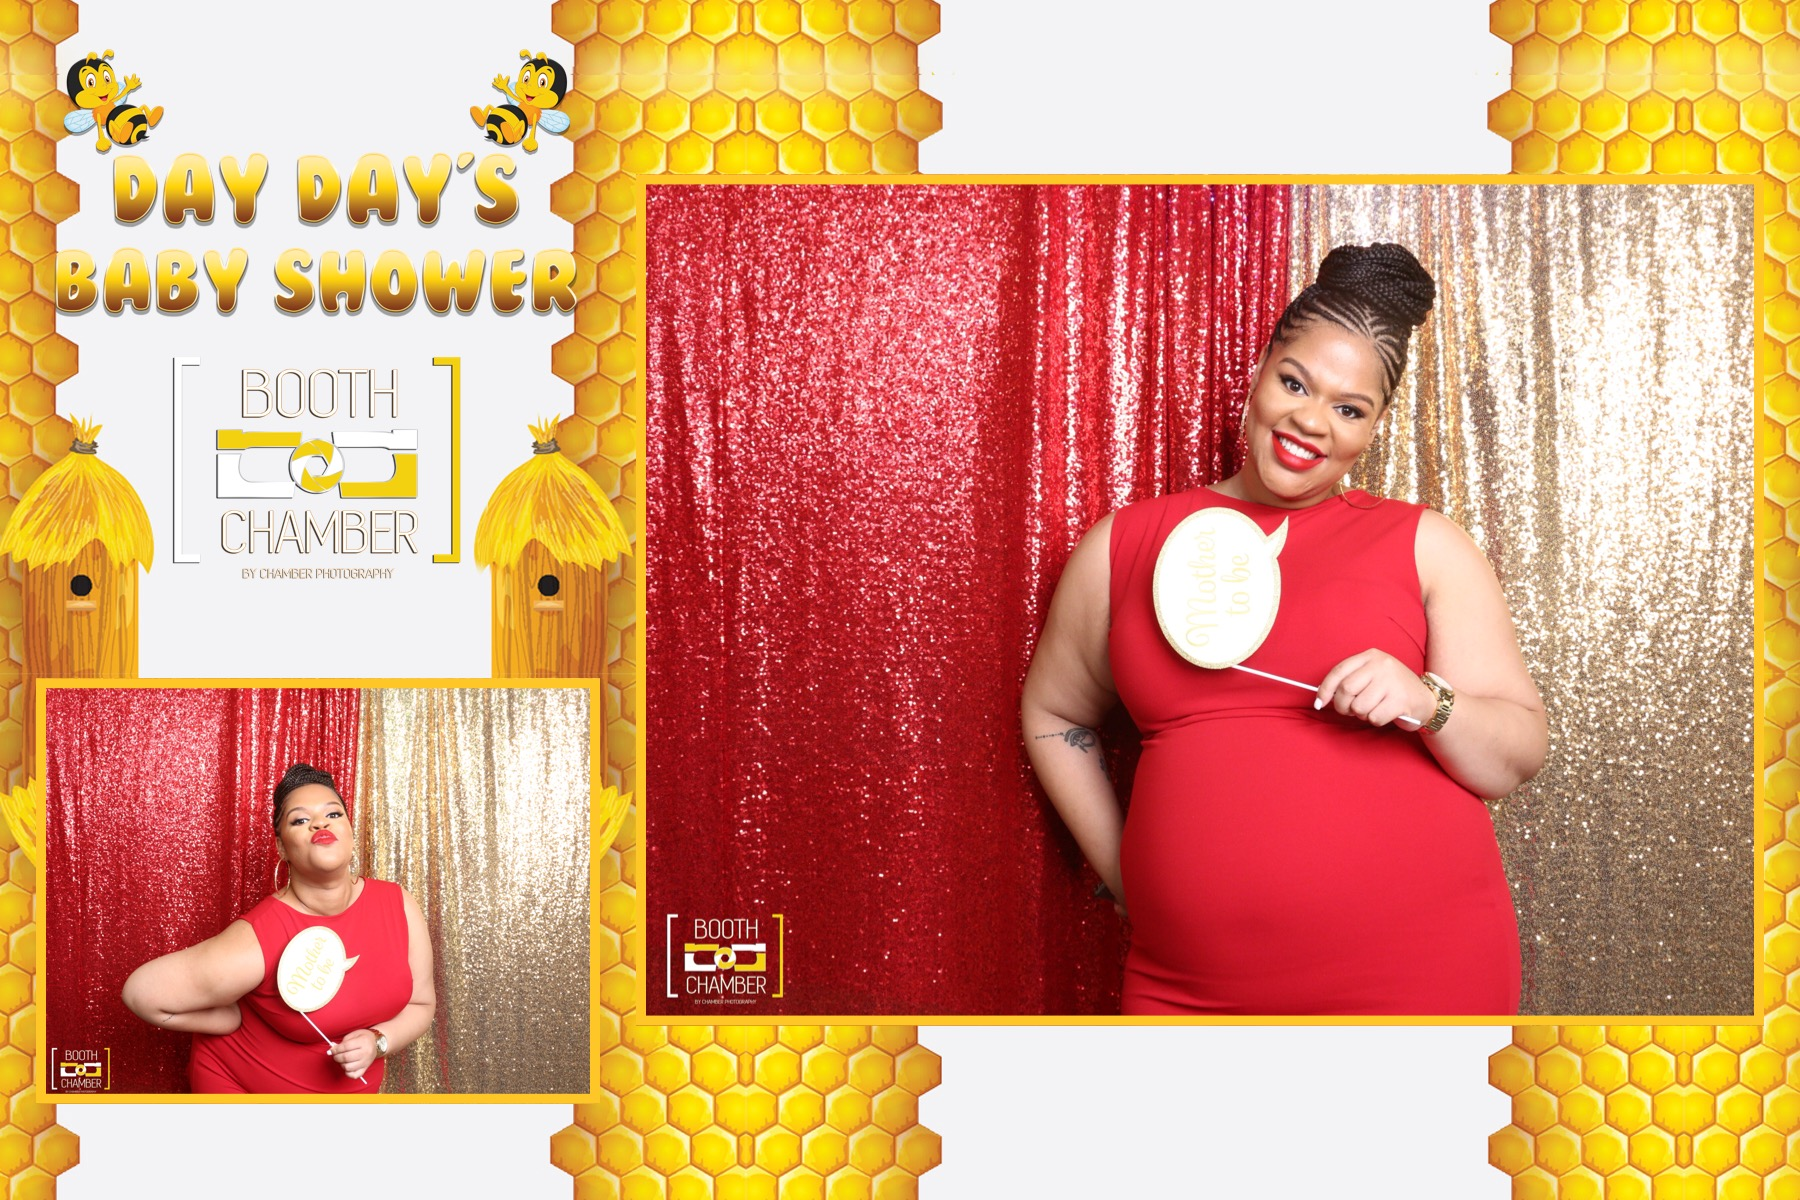 Booth Chamber Photo Booth Baby Shower Chamber Hart Photography_21.jpeg